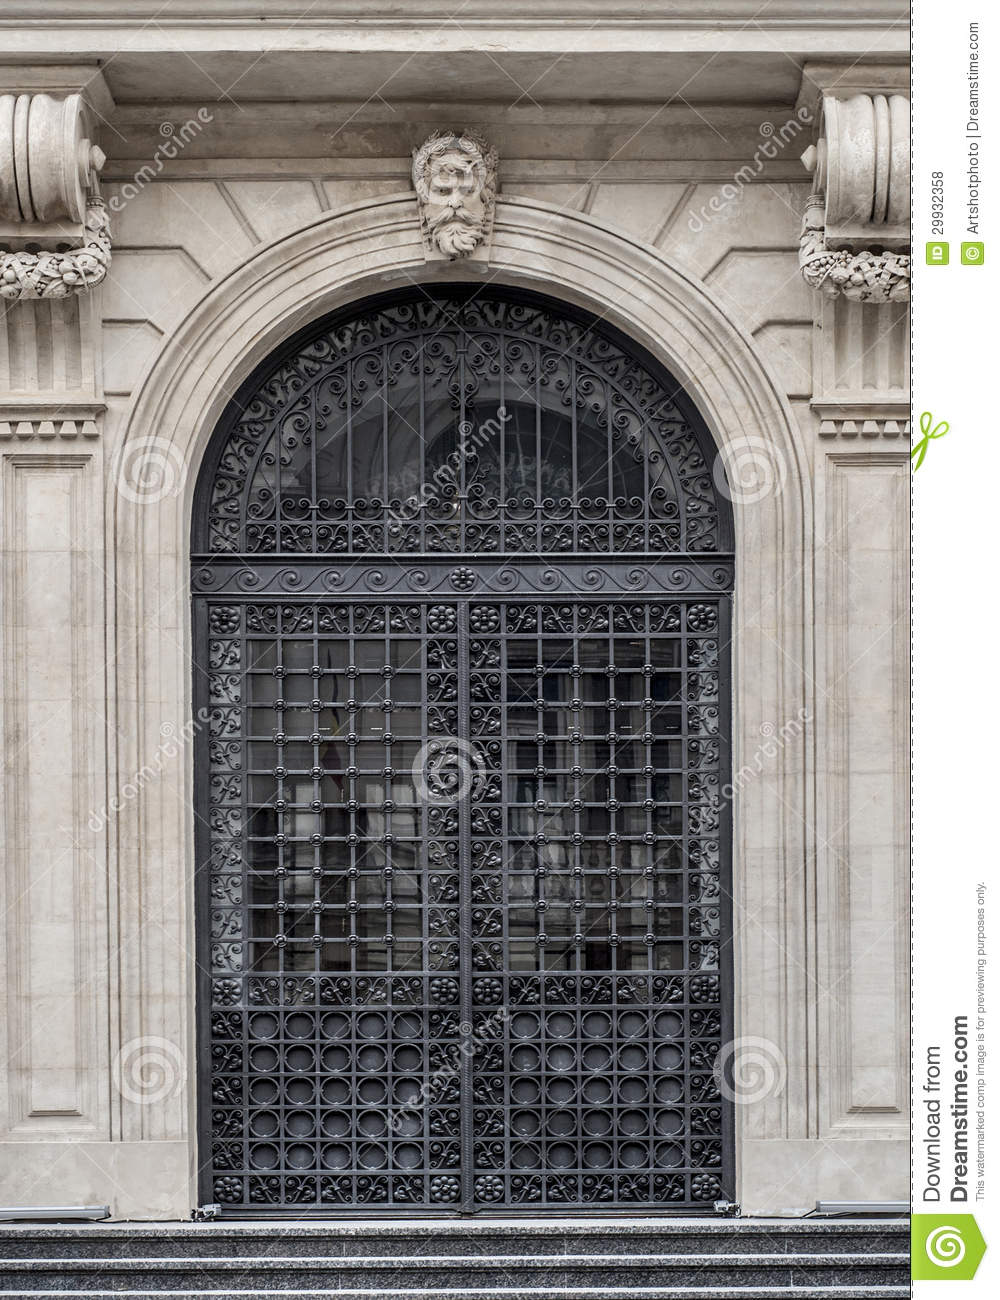 Wrought Iron Entrance Door Of A Historic Building Stock